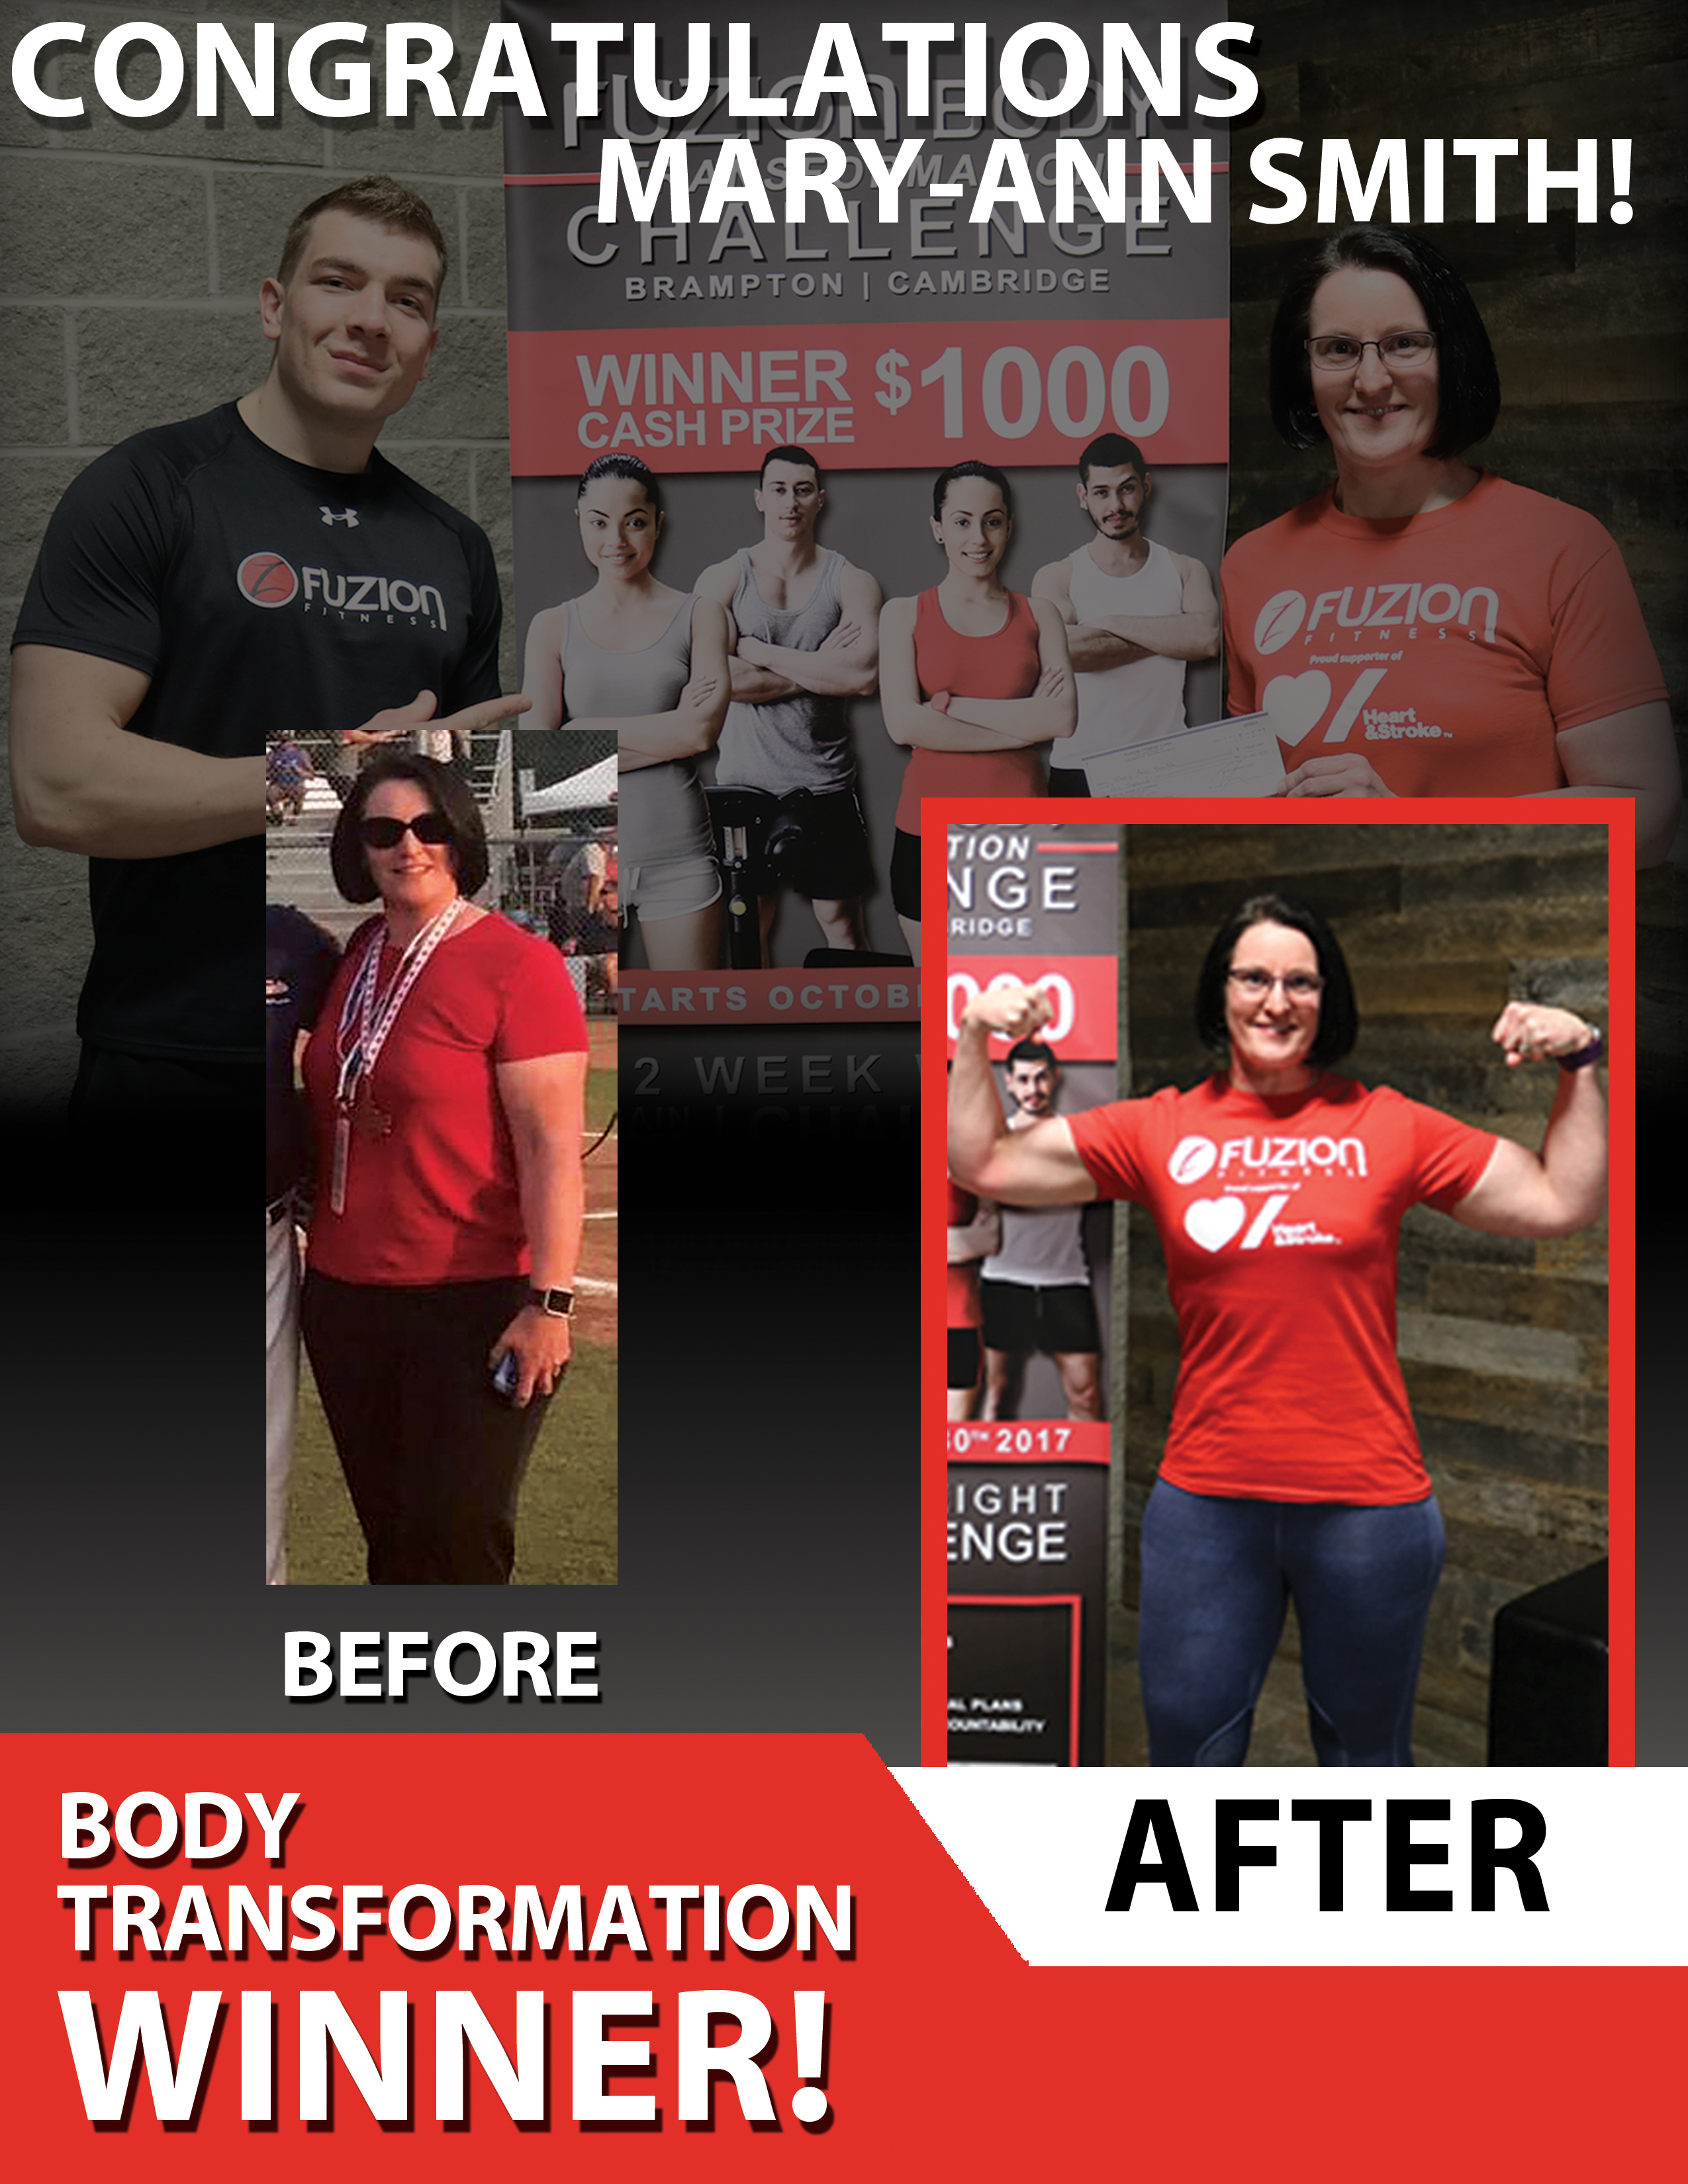 Body transformation winner rgb